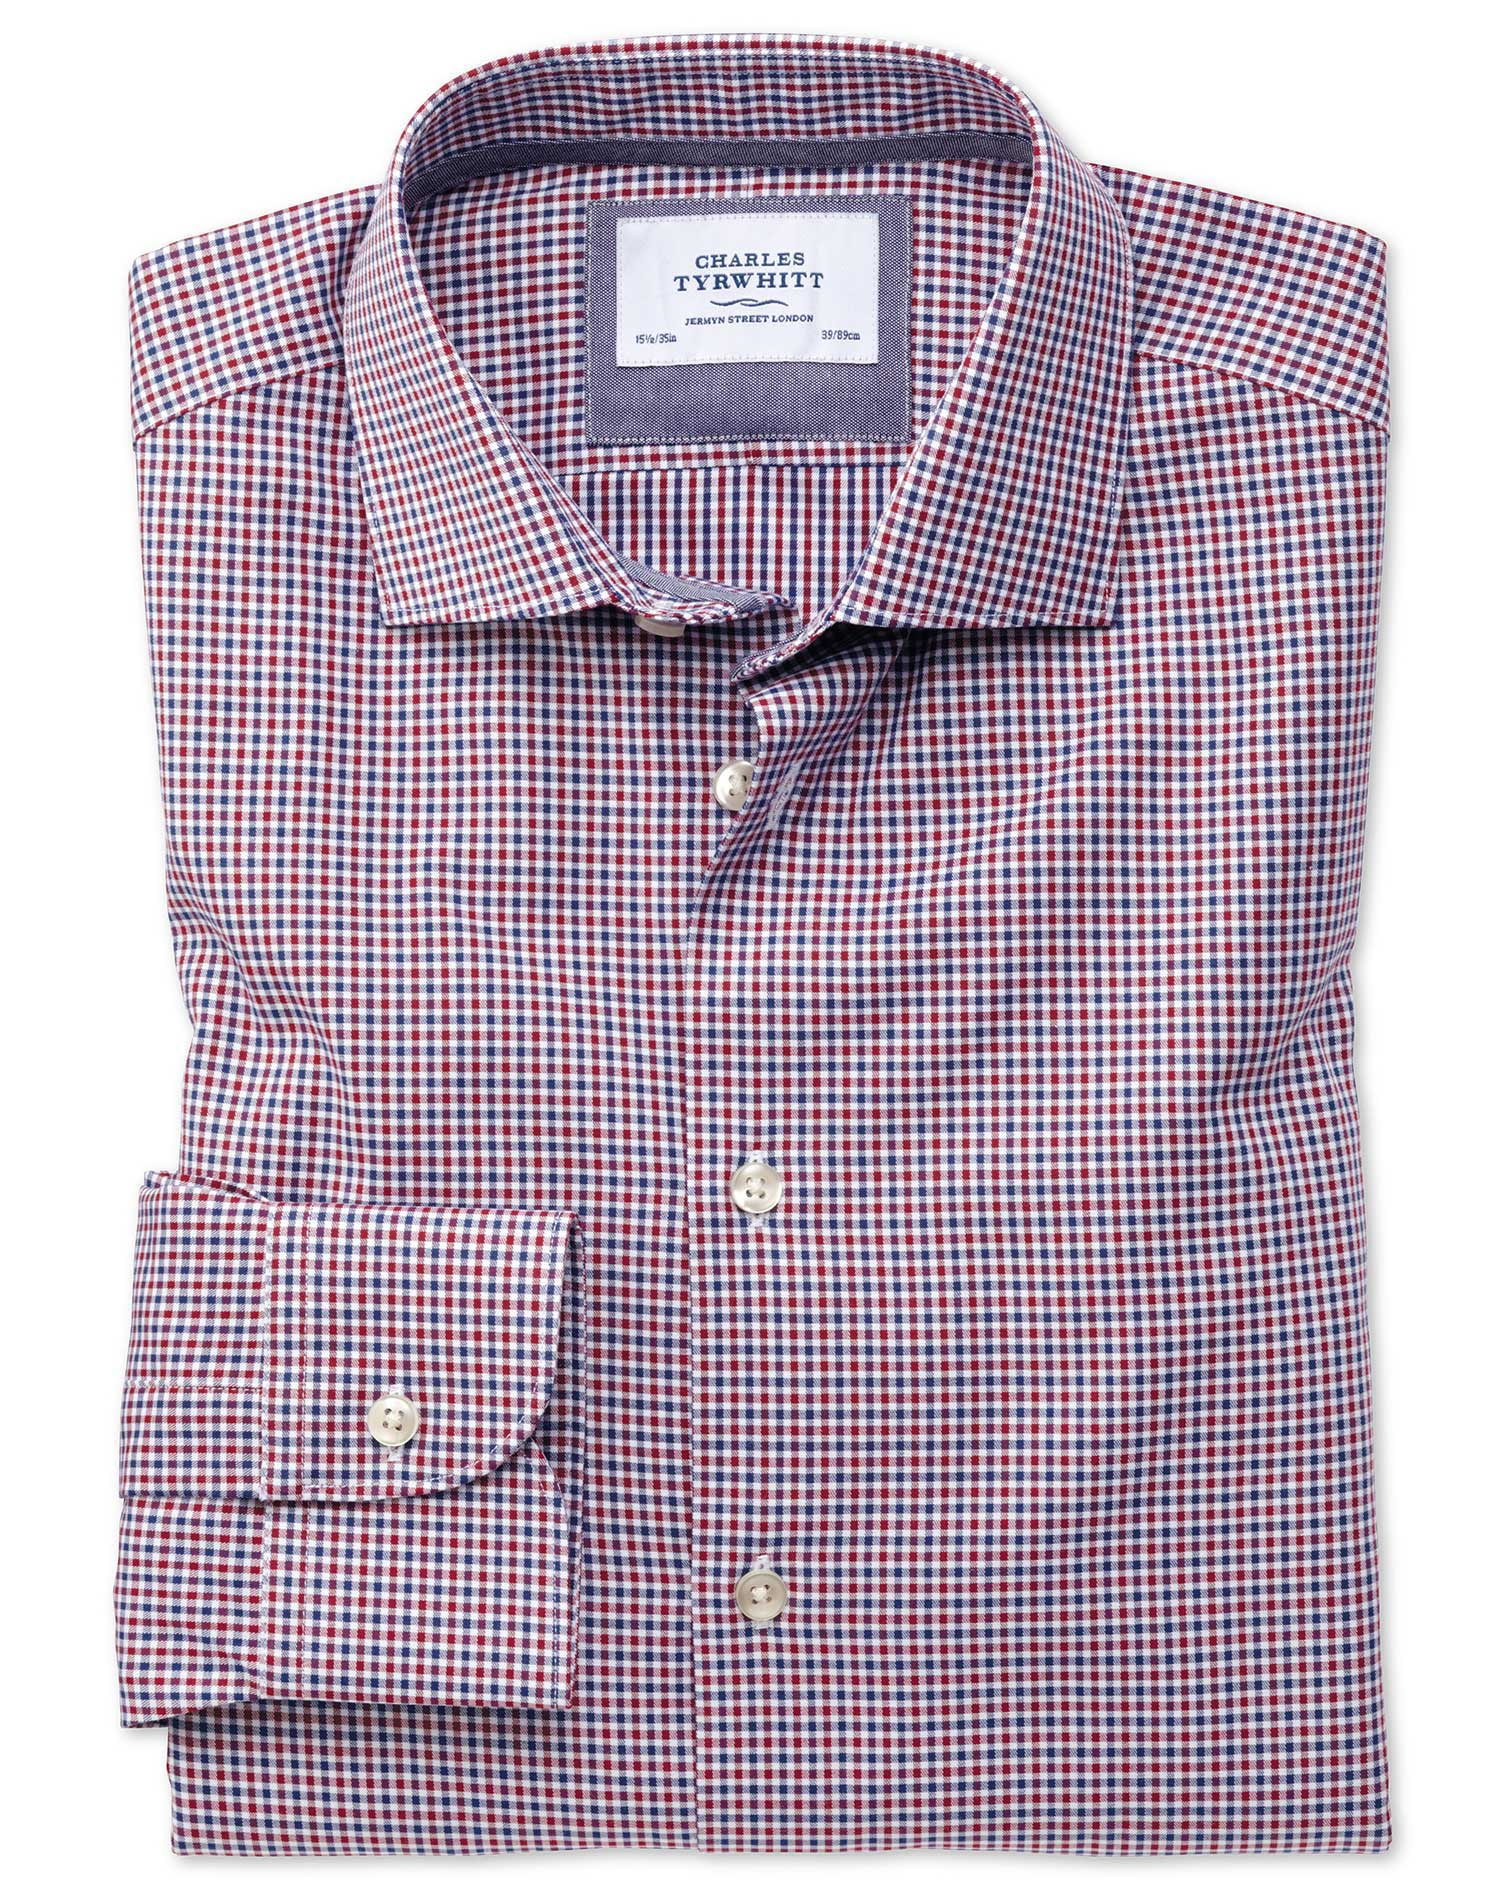 Extra Slim Fit Semi-Cutaway Business Casual Gingham Red and Navy Cotton Formal Shirt Single Cuff Siz